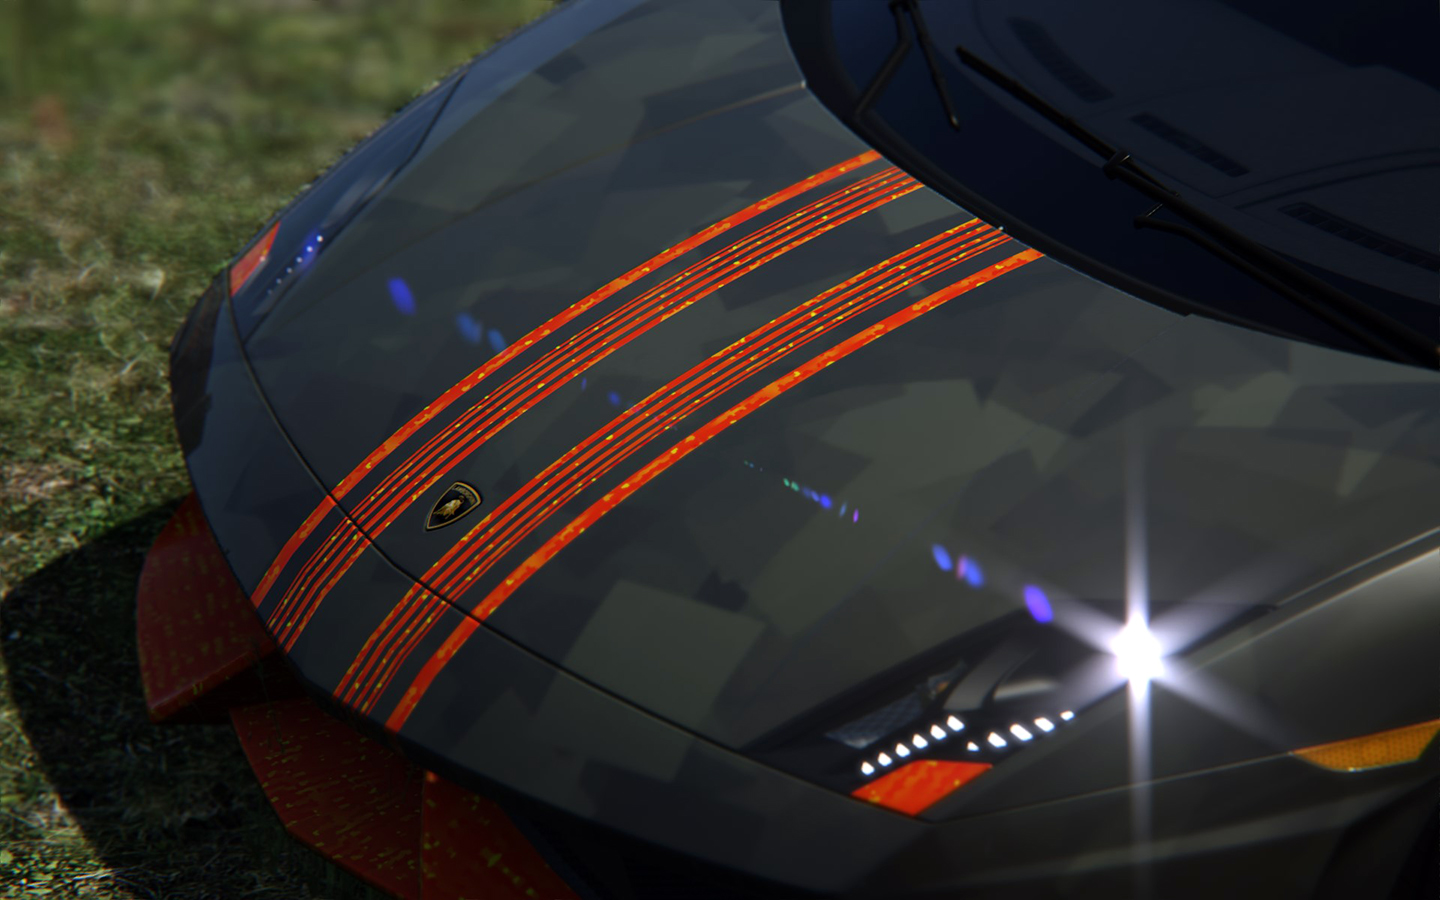 Screenshot_ks_lamborghini_gallardo_sl_s3_ks_nordschleife_25-12-115-21-22-53down.jpg